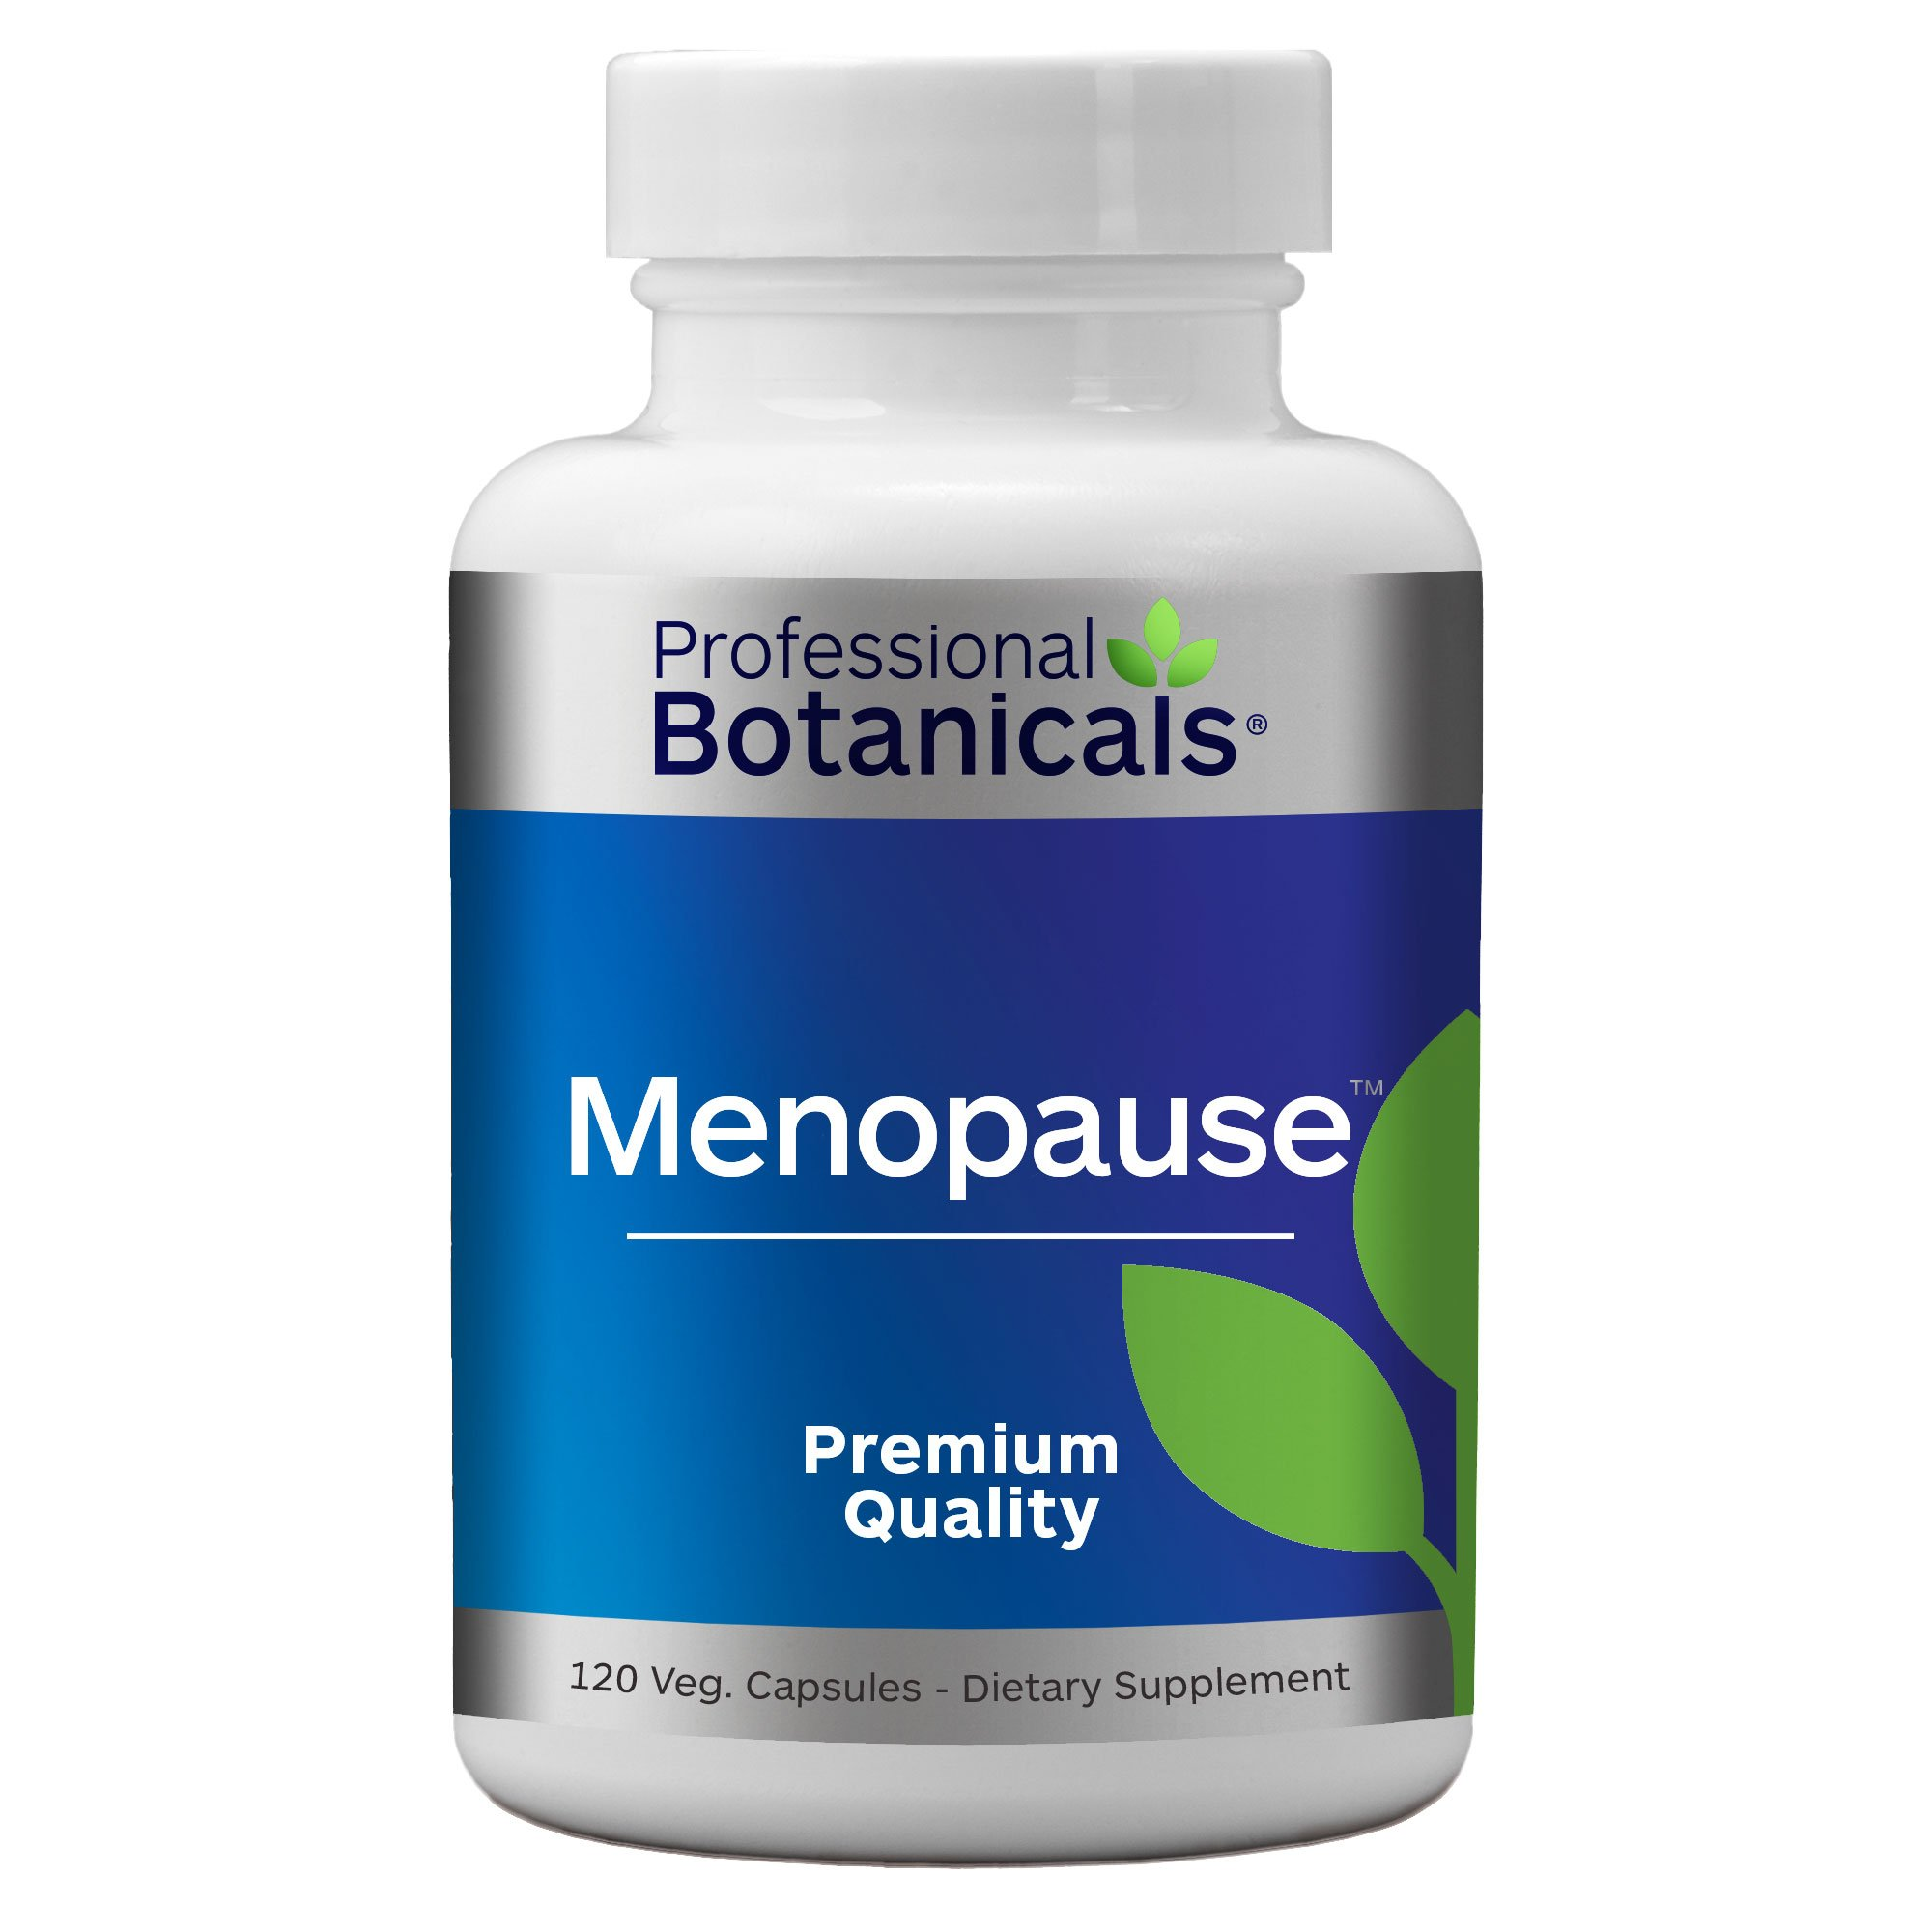 Professional Botanicals Menopause - Vegan Menopause Supplement for Women Chaste Berry Extract, Black Cohosh Root Extract for Hot Flashes - 120 Vegetarian Capsules